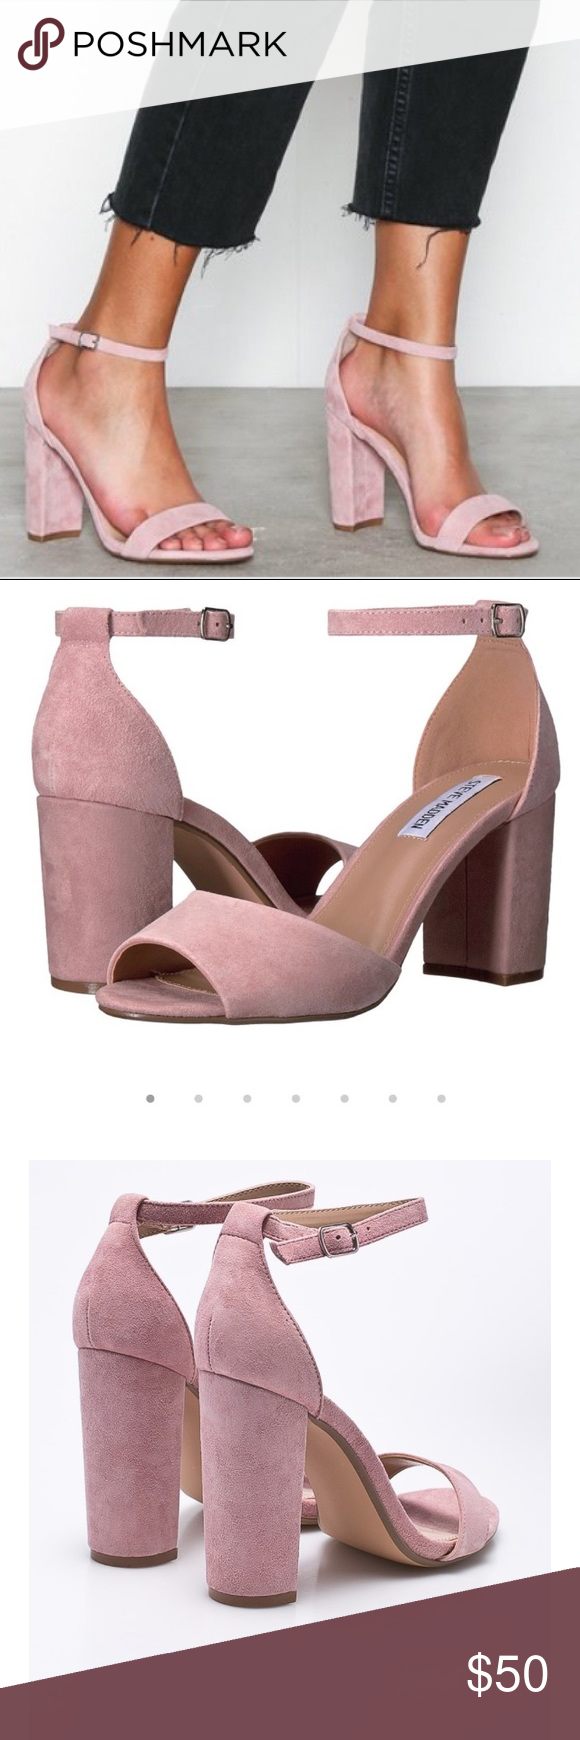 9bc49825176 Steve Madden Mirna block heel sandal in pink blush Steve Madden Mirna block  heel sandal in pink blush. Worn once to a wedding for a few hours but still  in ...